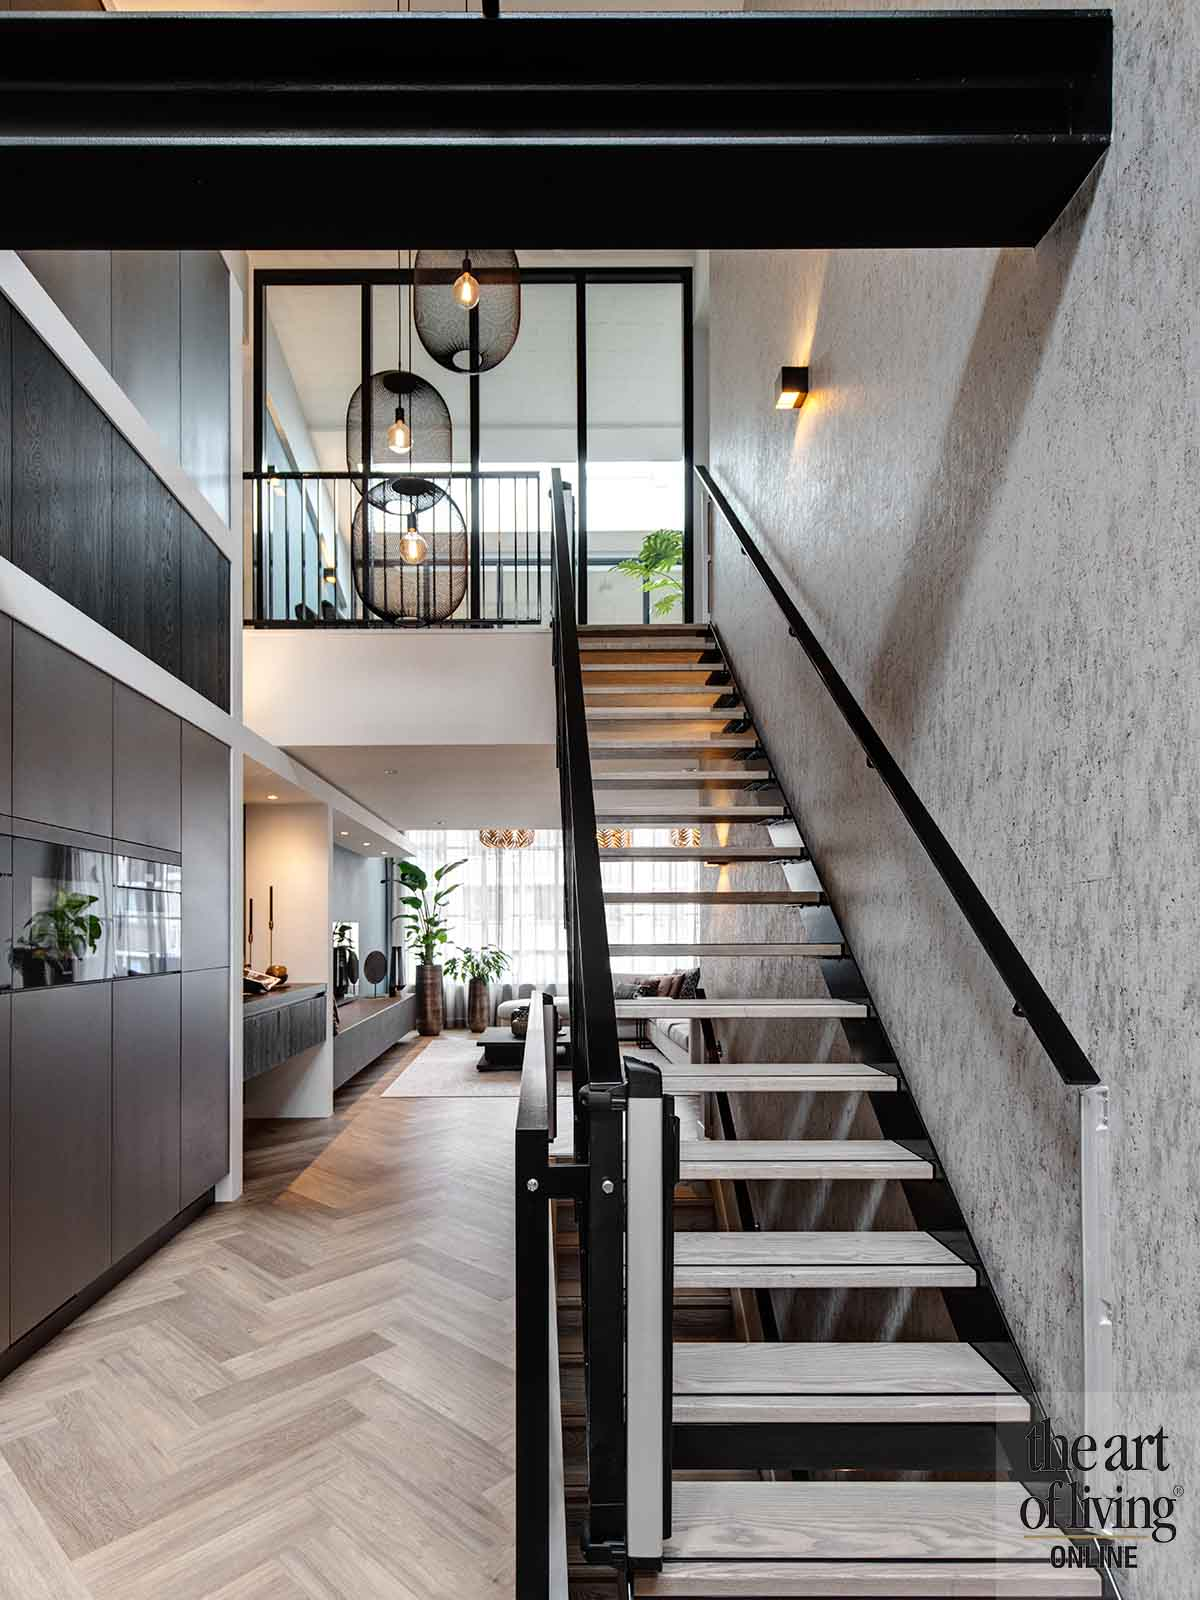 Herenhuis | The home factory, the art of living